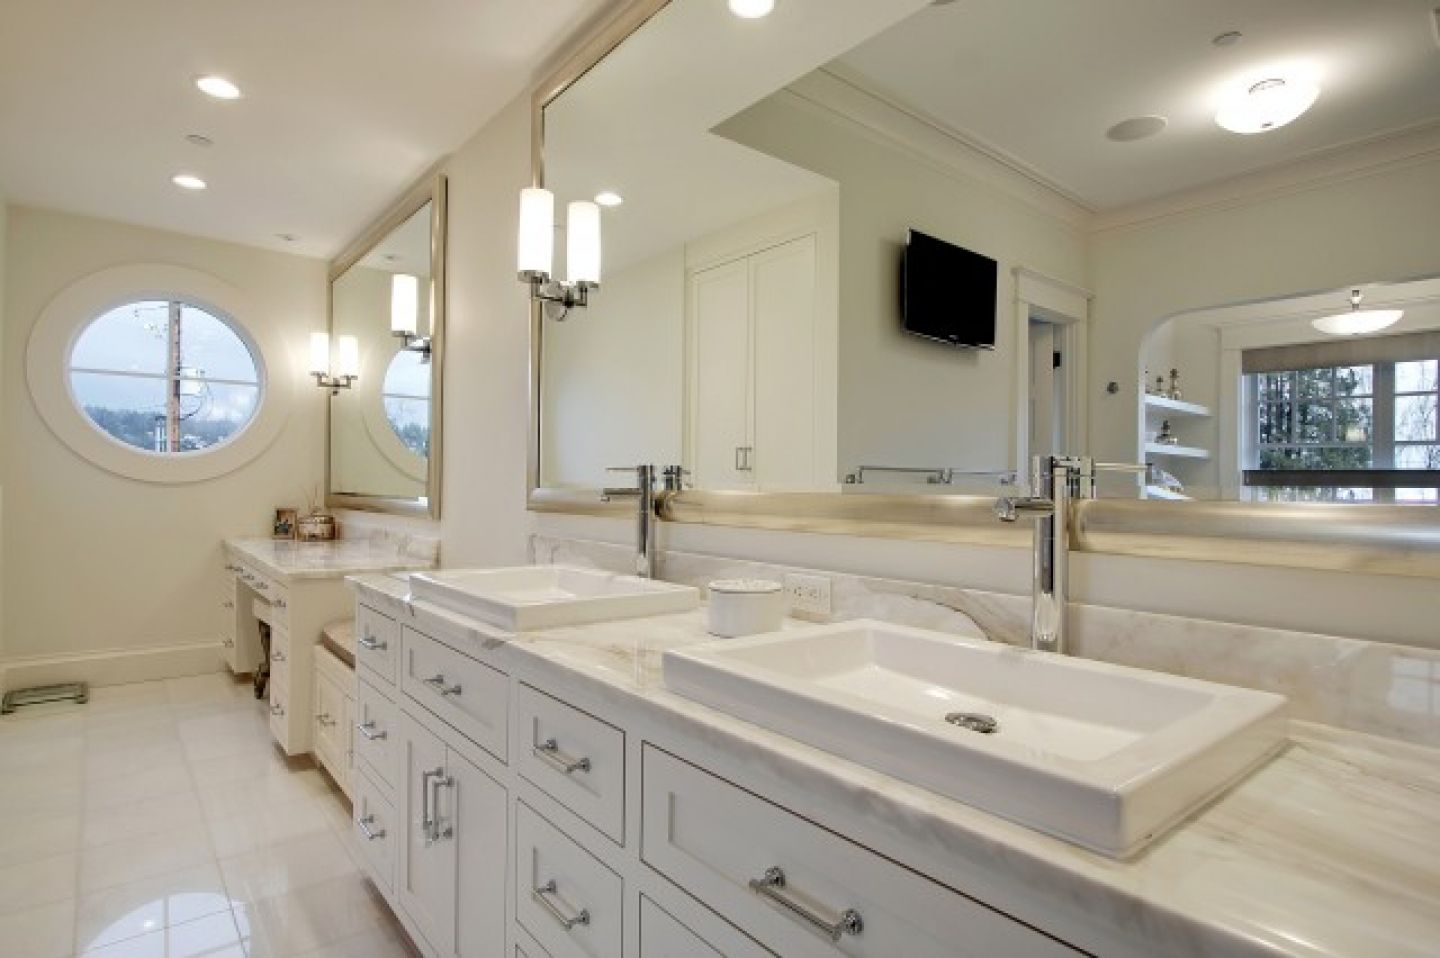 3 simple bathroom mirror ideas midcityeast for Bathroom mirror ideas